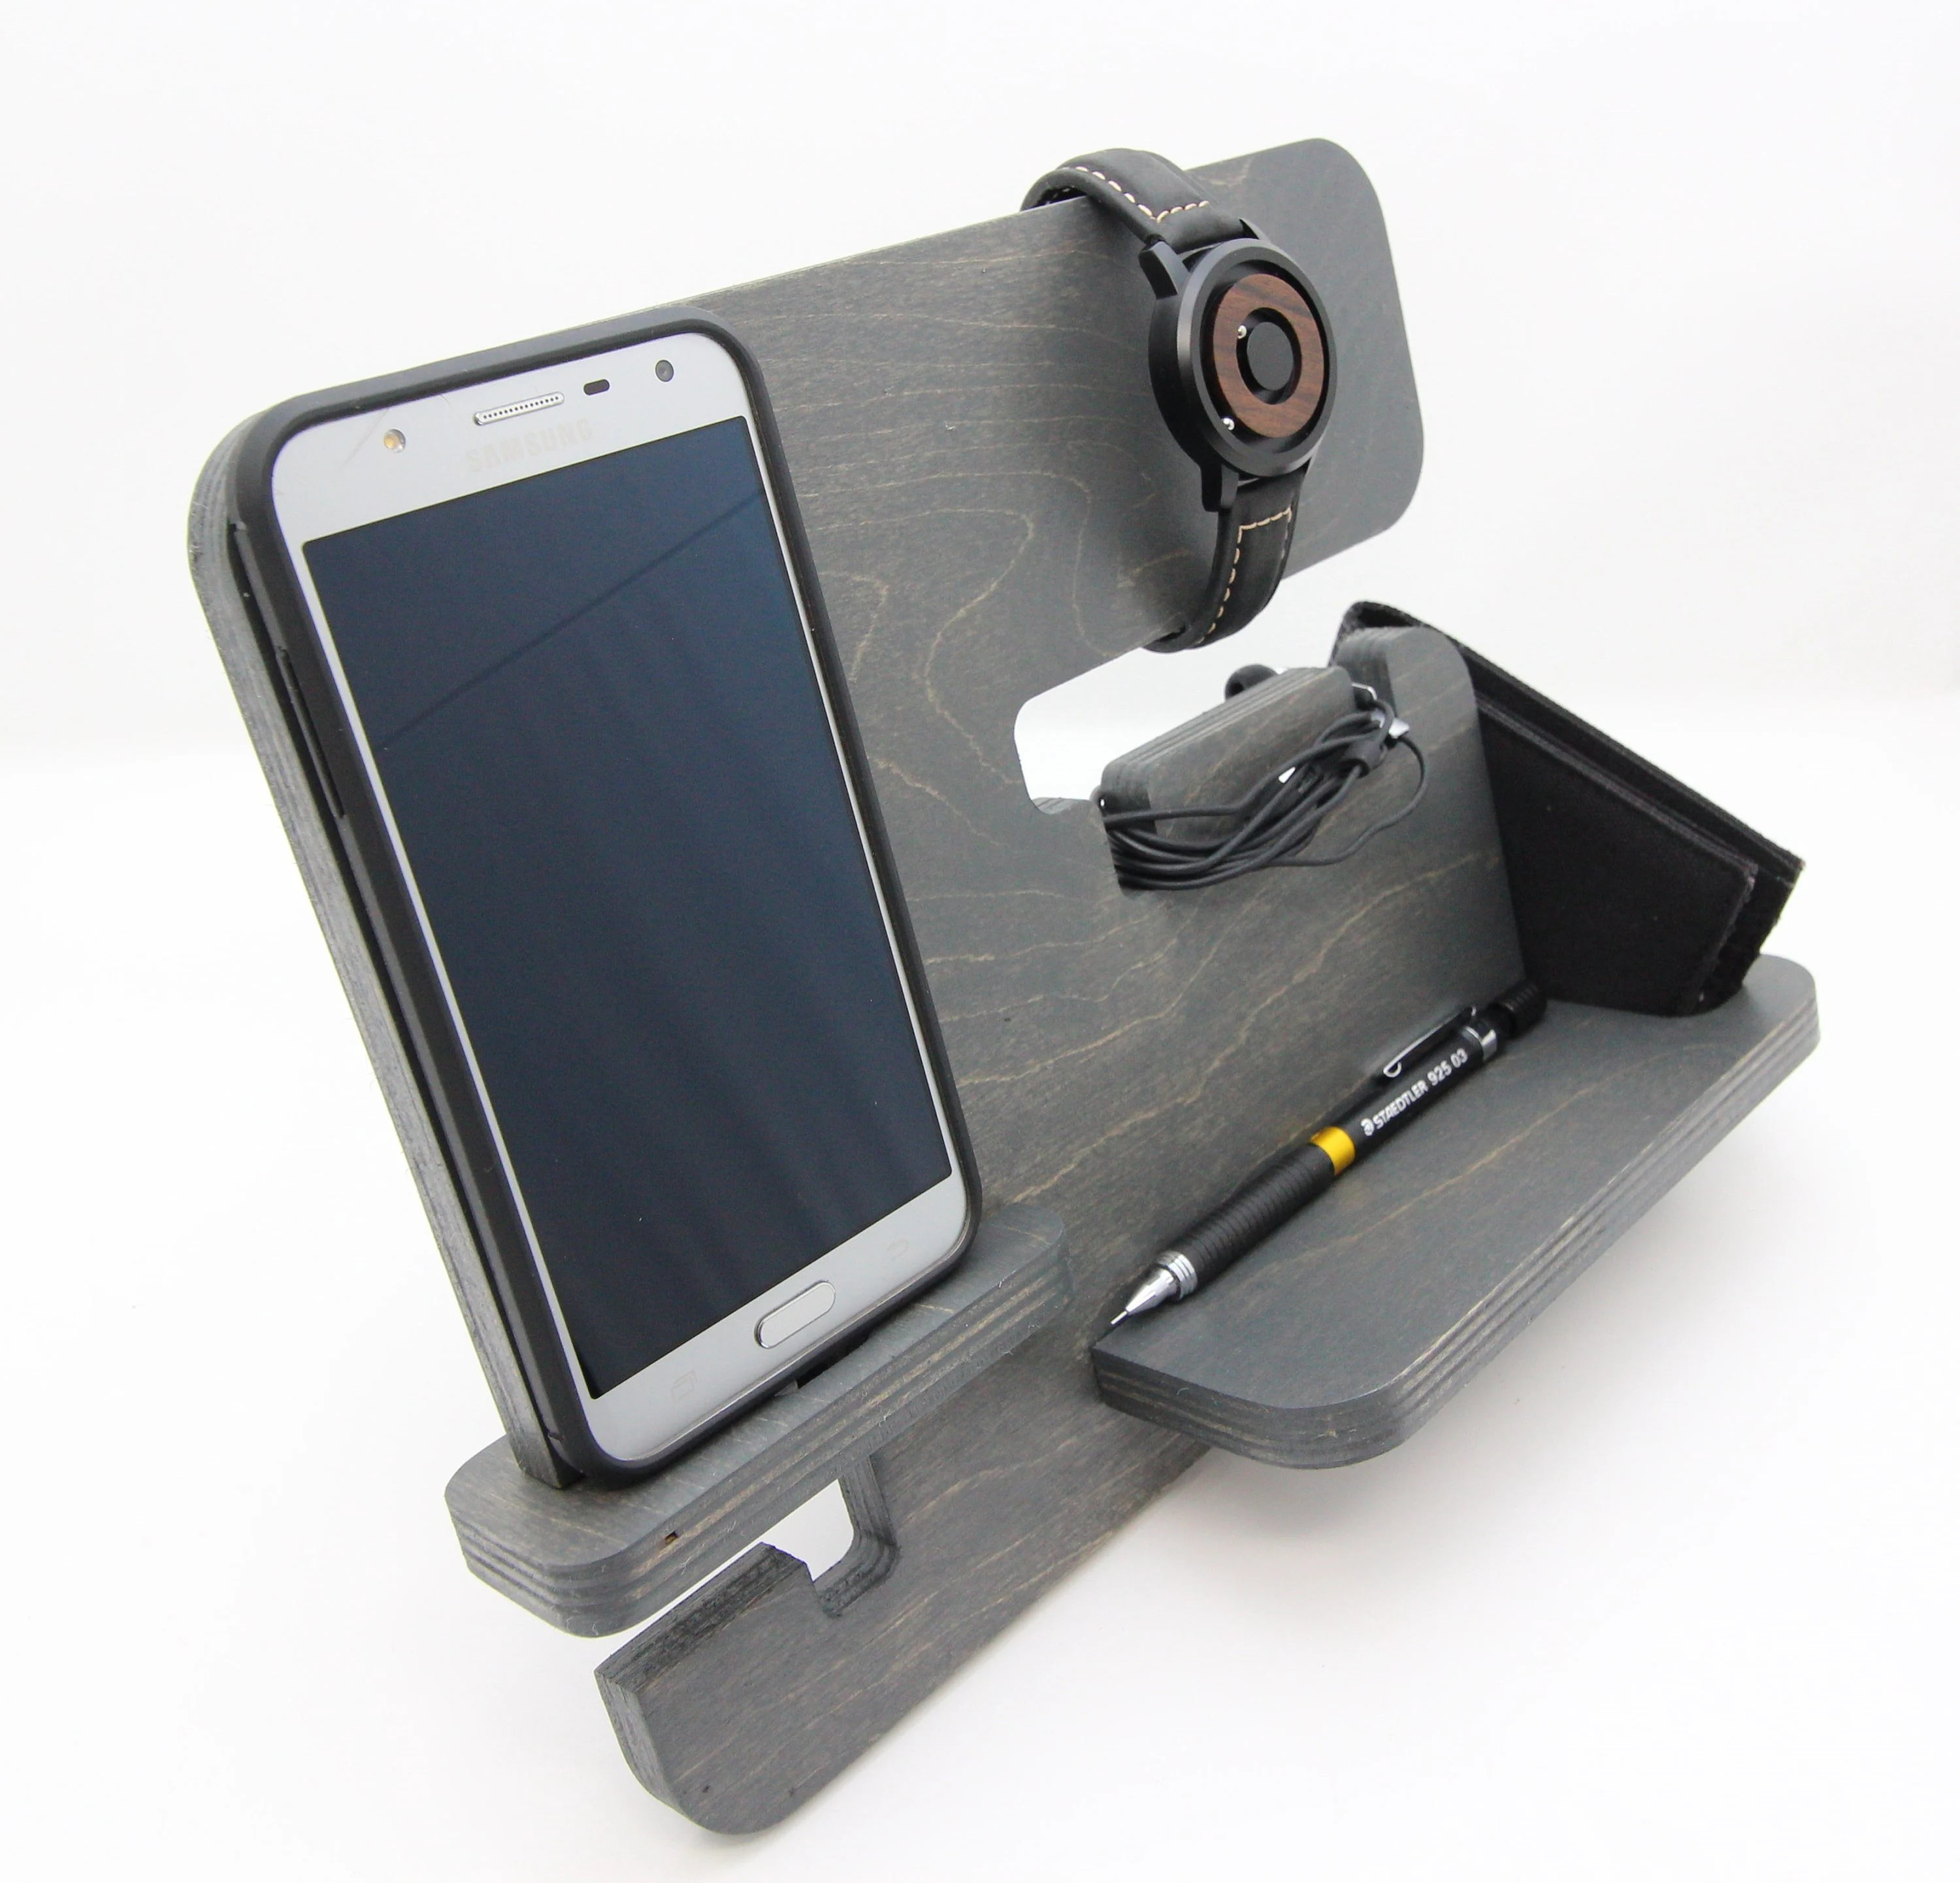 Personalized European Style Docking Station / Charging Stand image 4